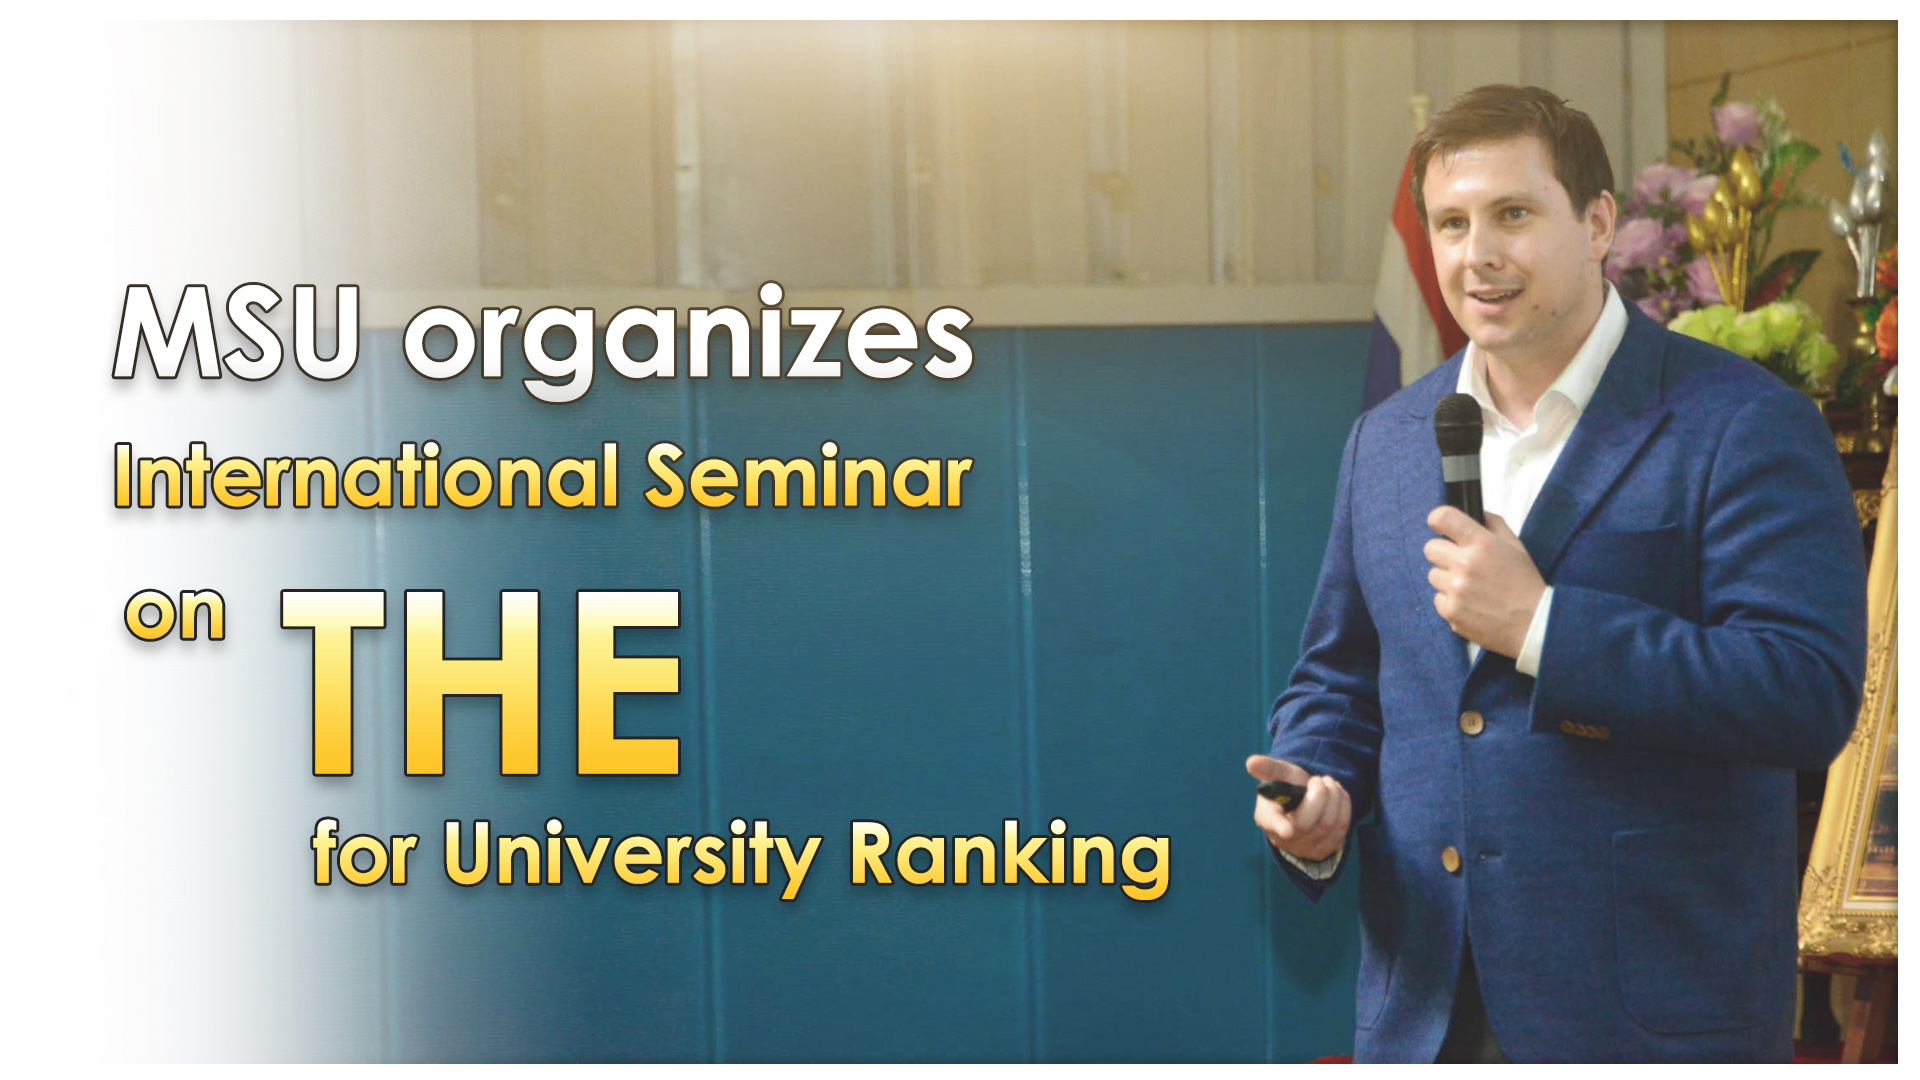 MSU organizes International Seminar on THE for University Ranking